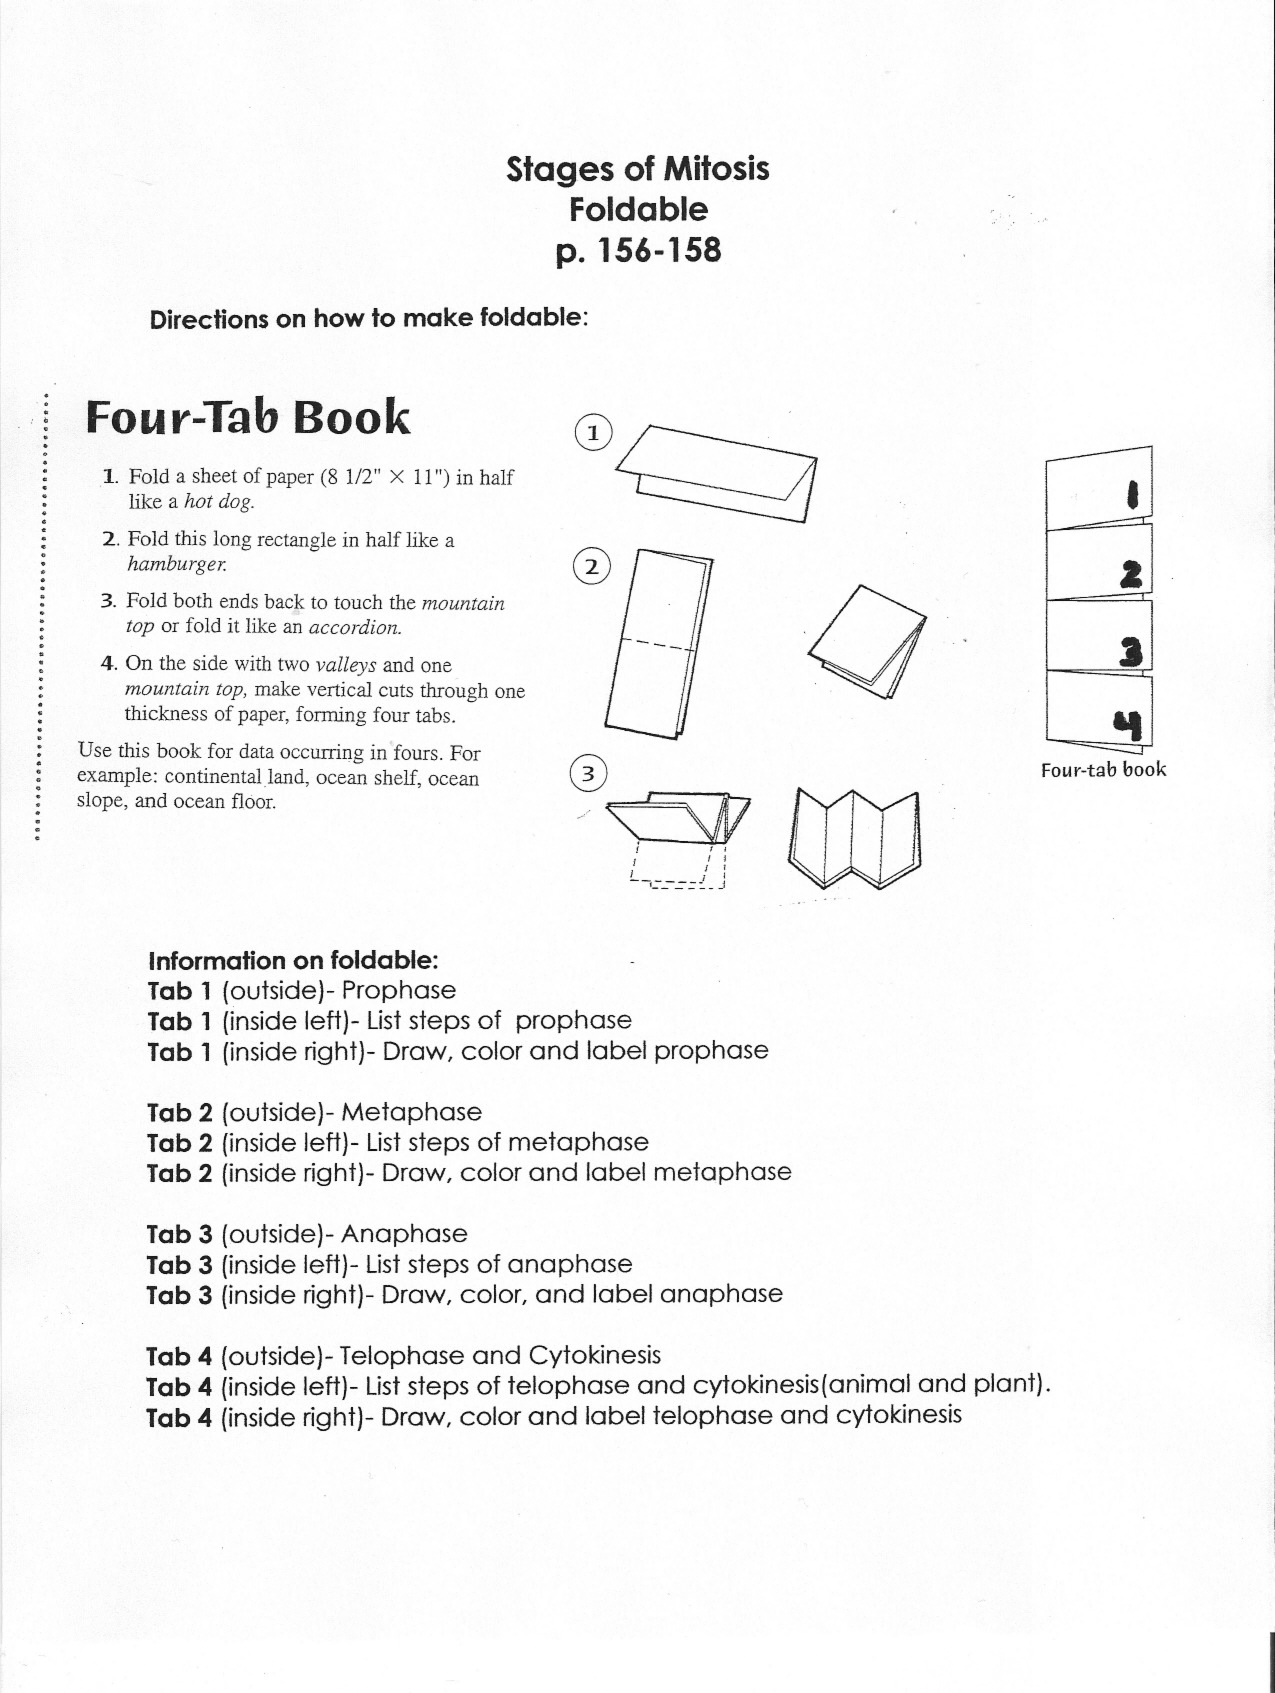 Vocabulary Foldable Template Stages of Mitosis Foldable